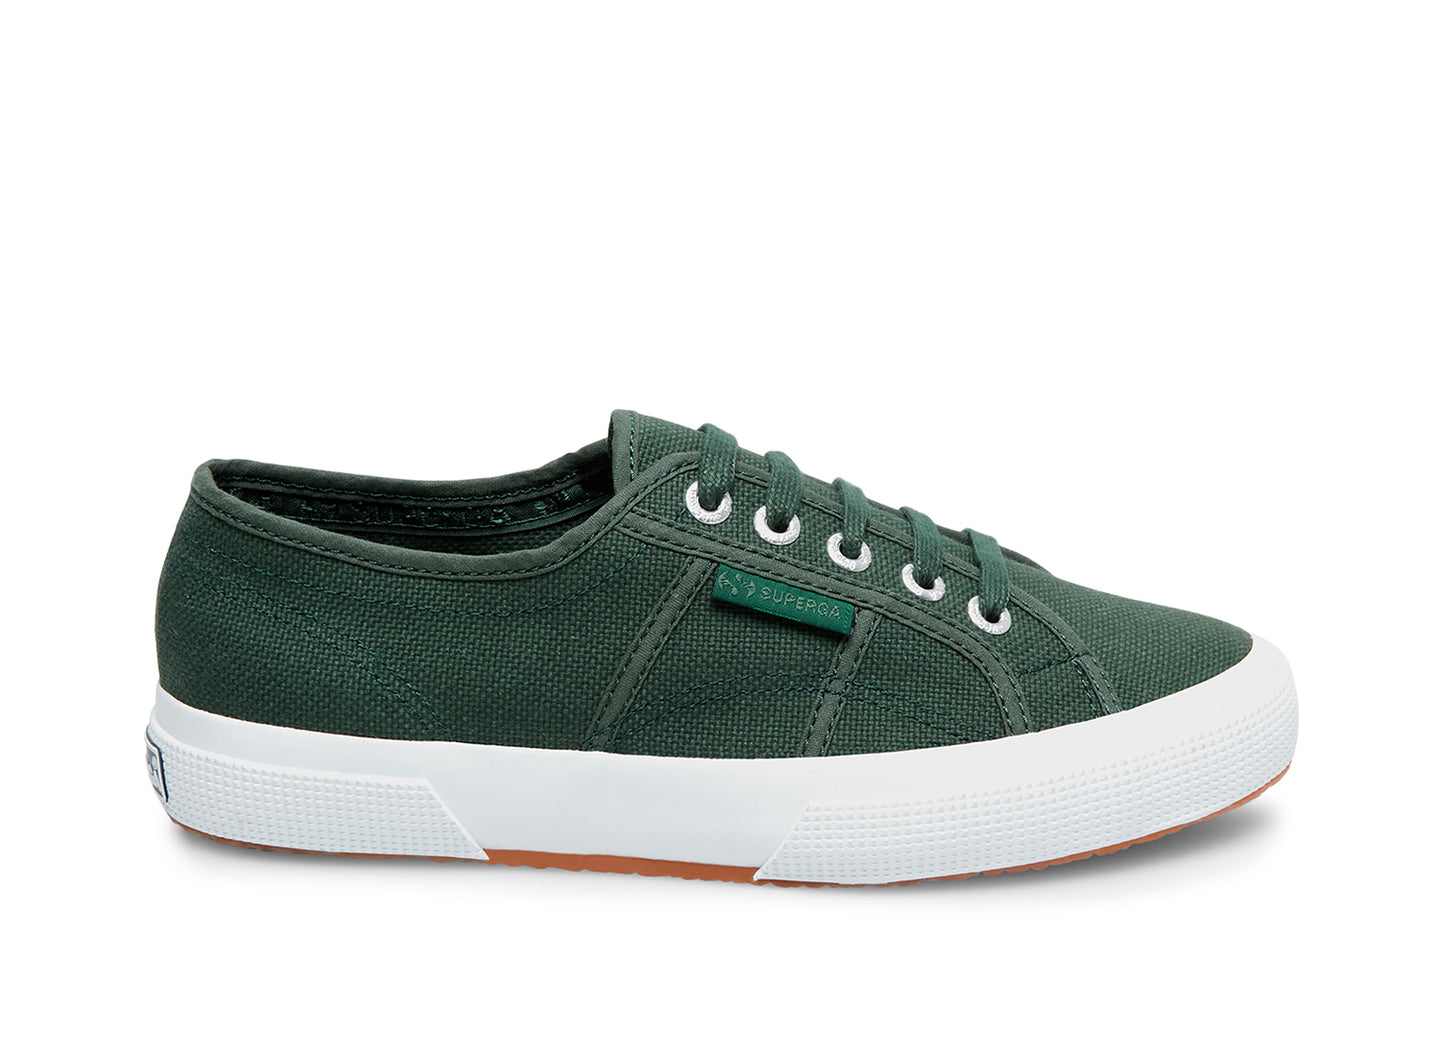 2750 COTU CLASSIC GREEN DARK - Women's and Men's